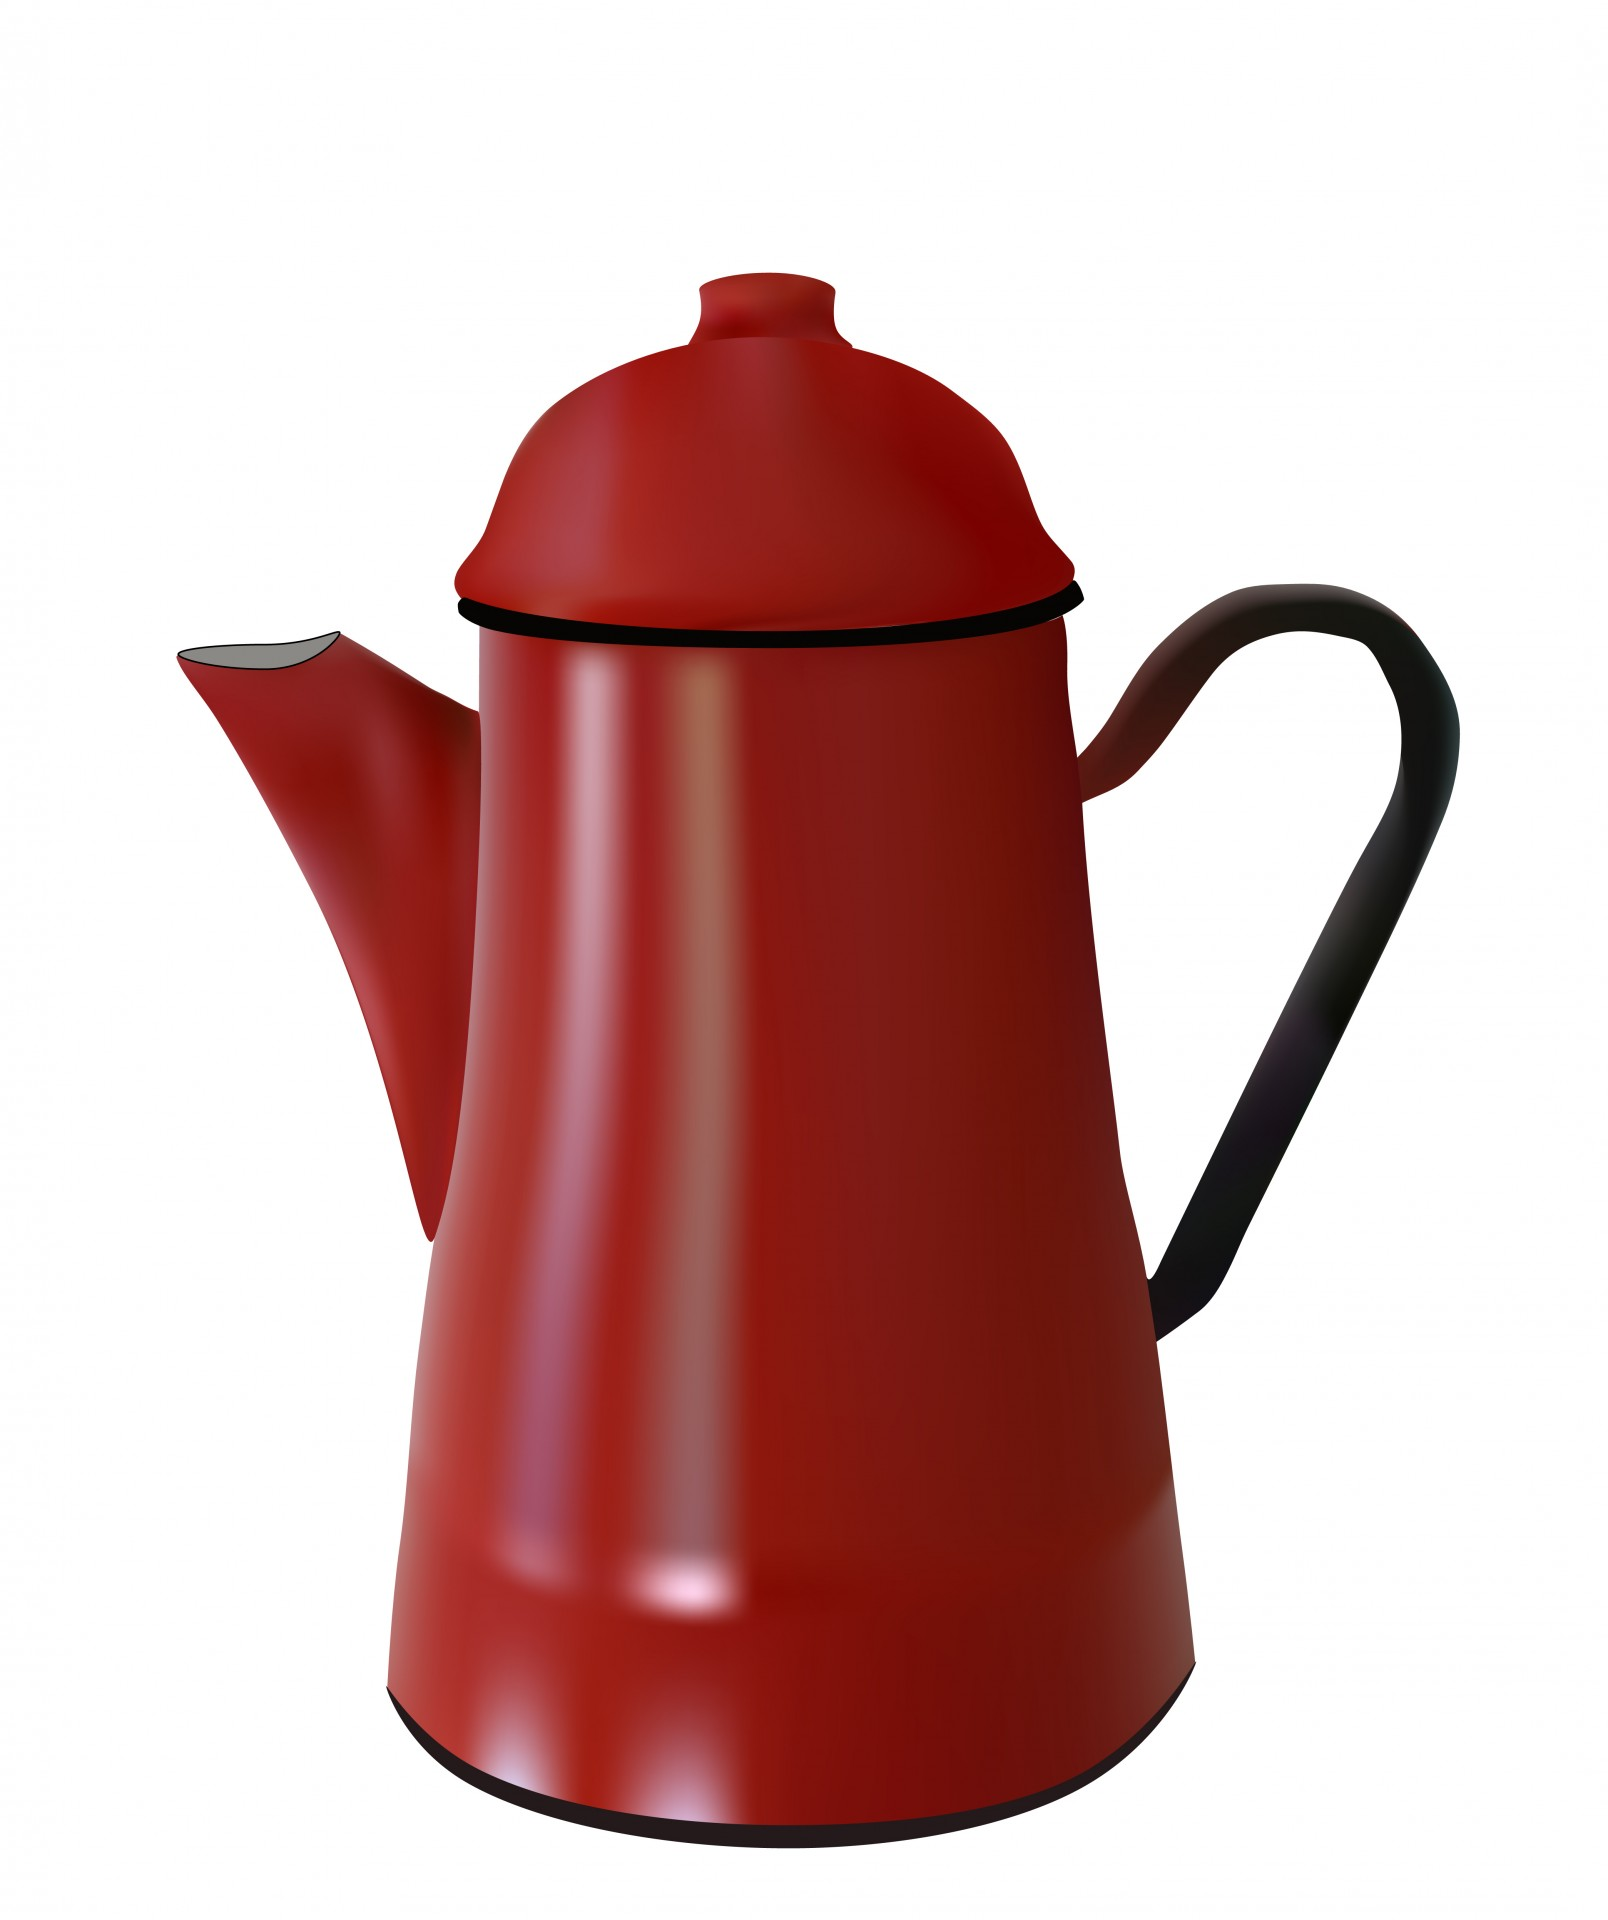 Coffee clipart kettle. Red pot free stock